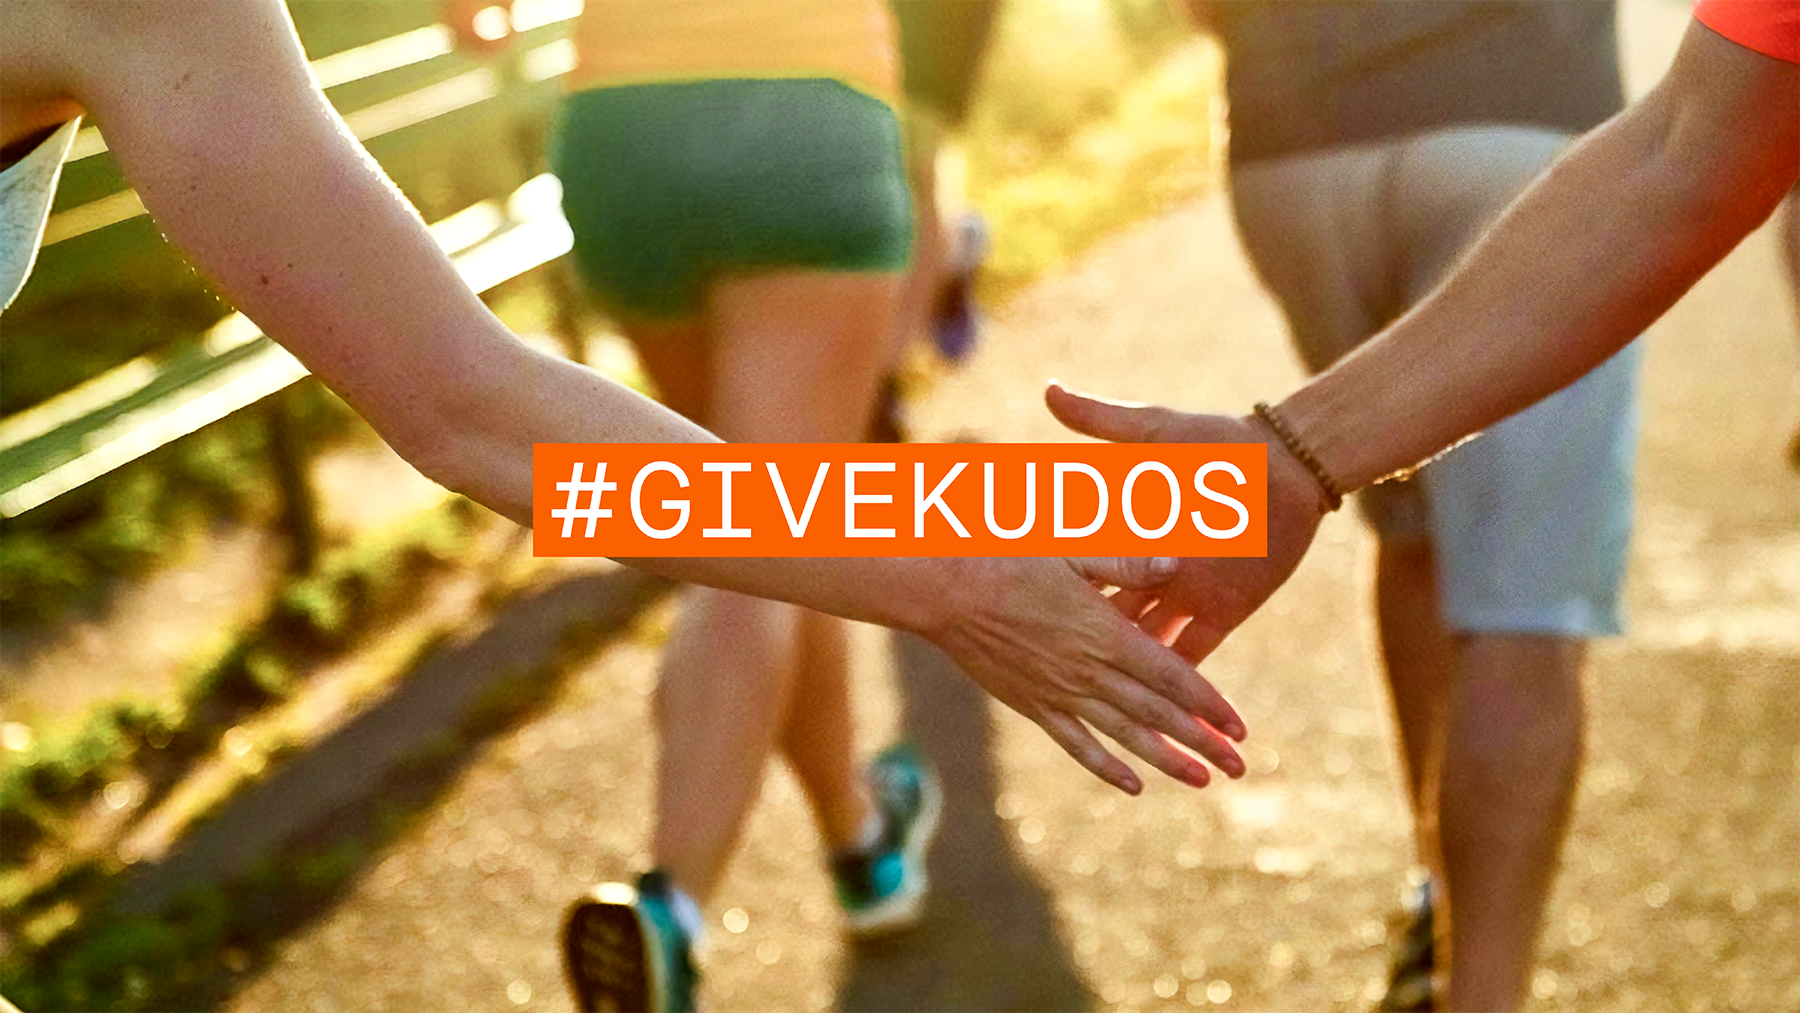 Give Kudos - Guidelines v1.2 kudos-15